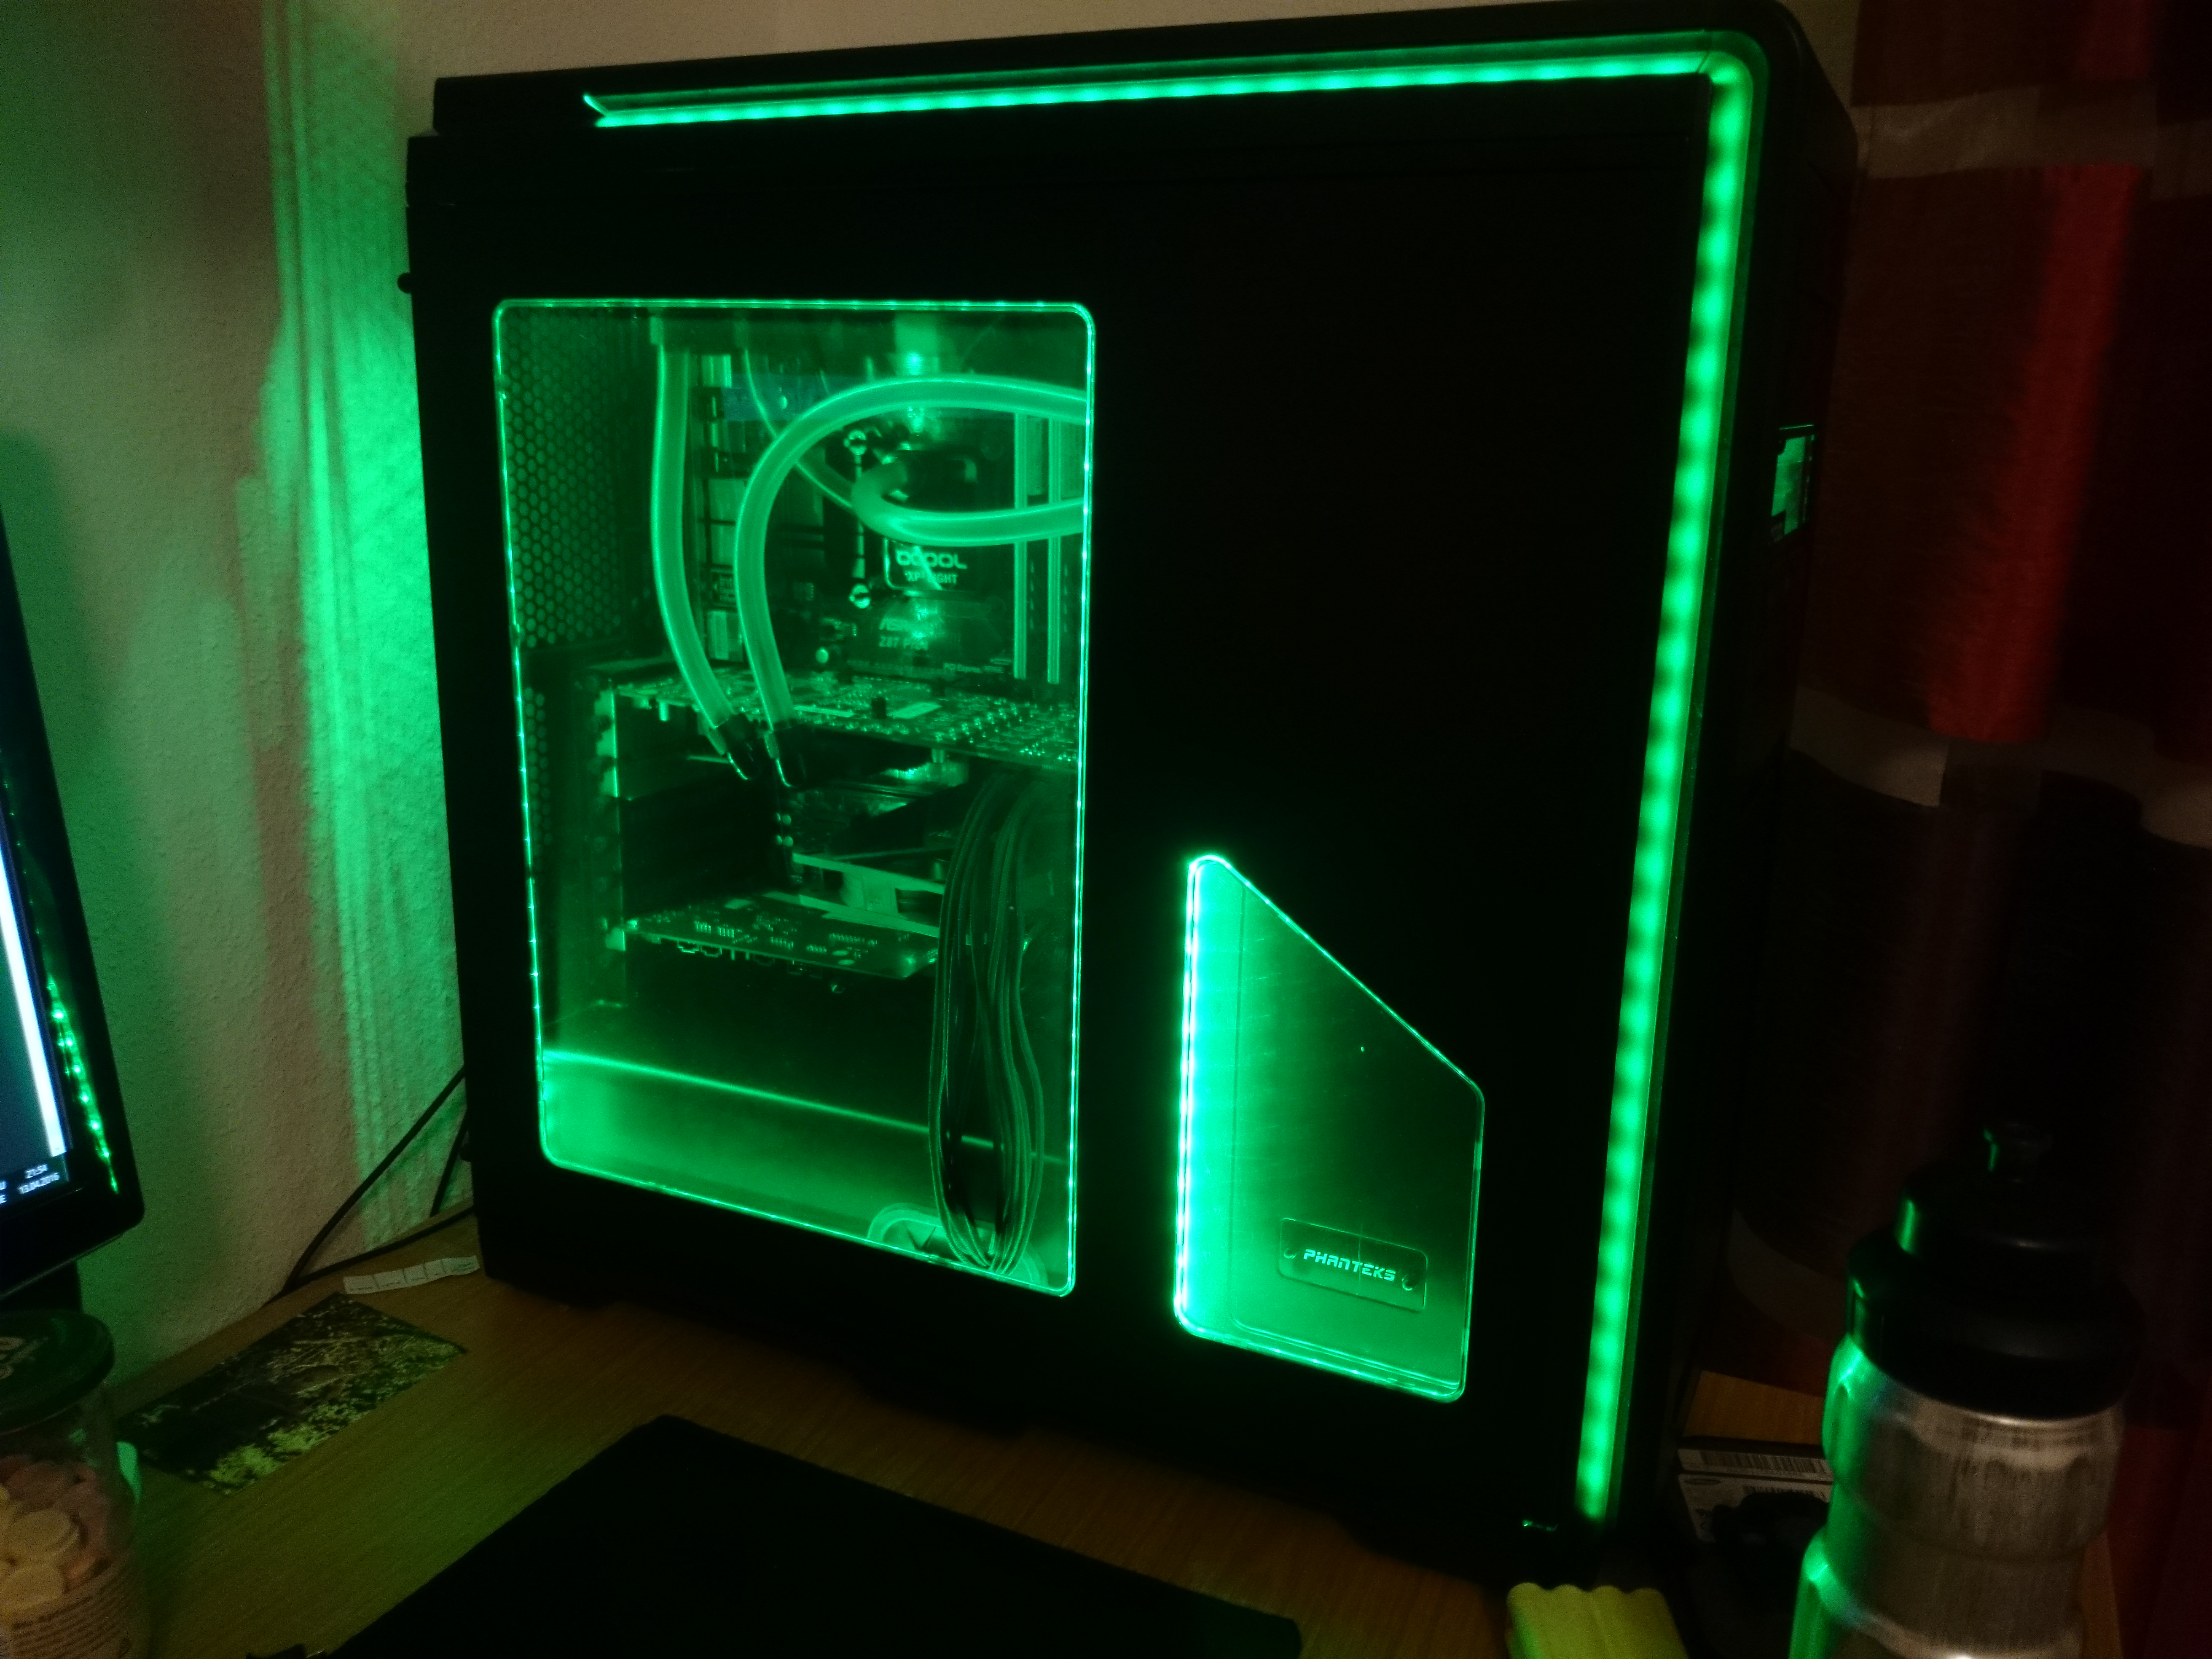 Nzxt H440 Razer Quot Chroma Quot Mod Case Modding And Other Mods